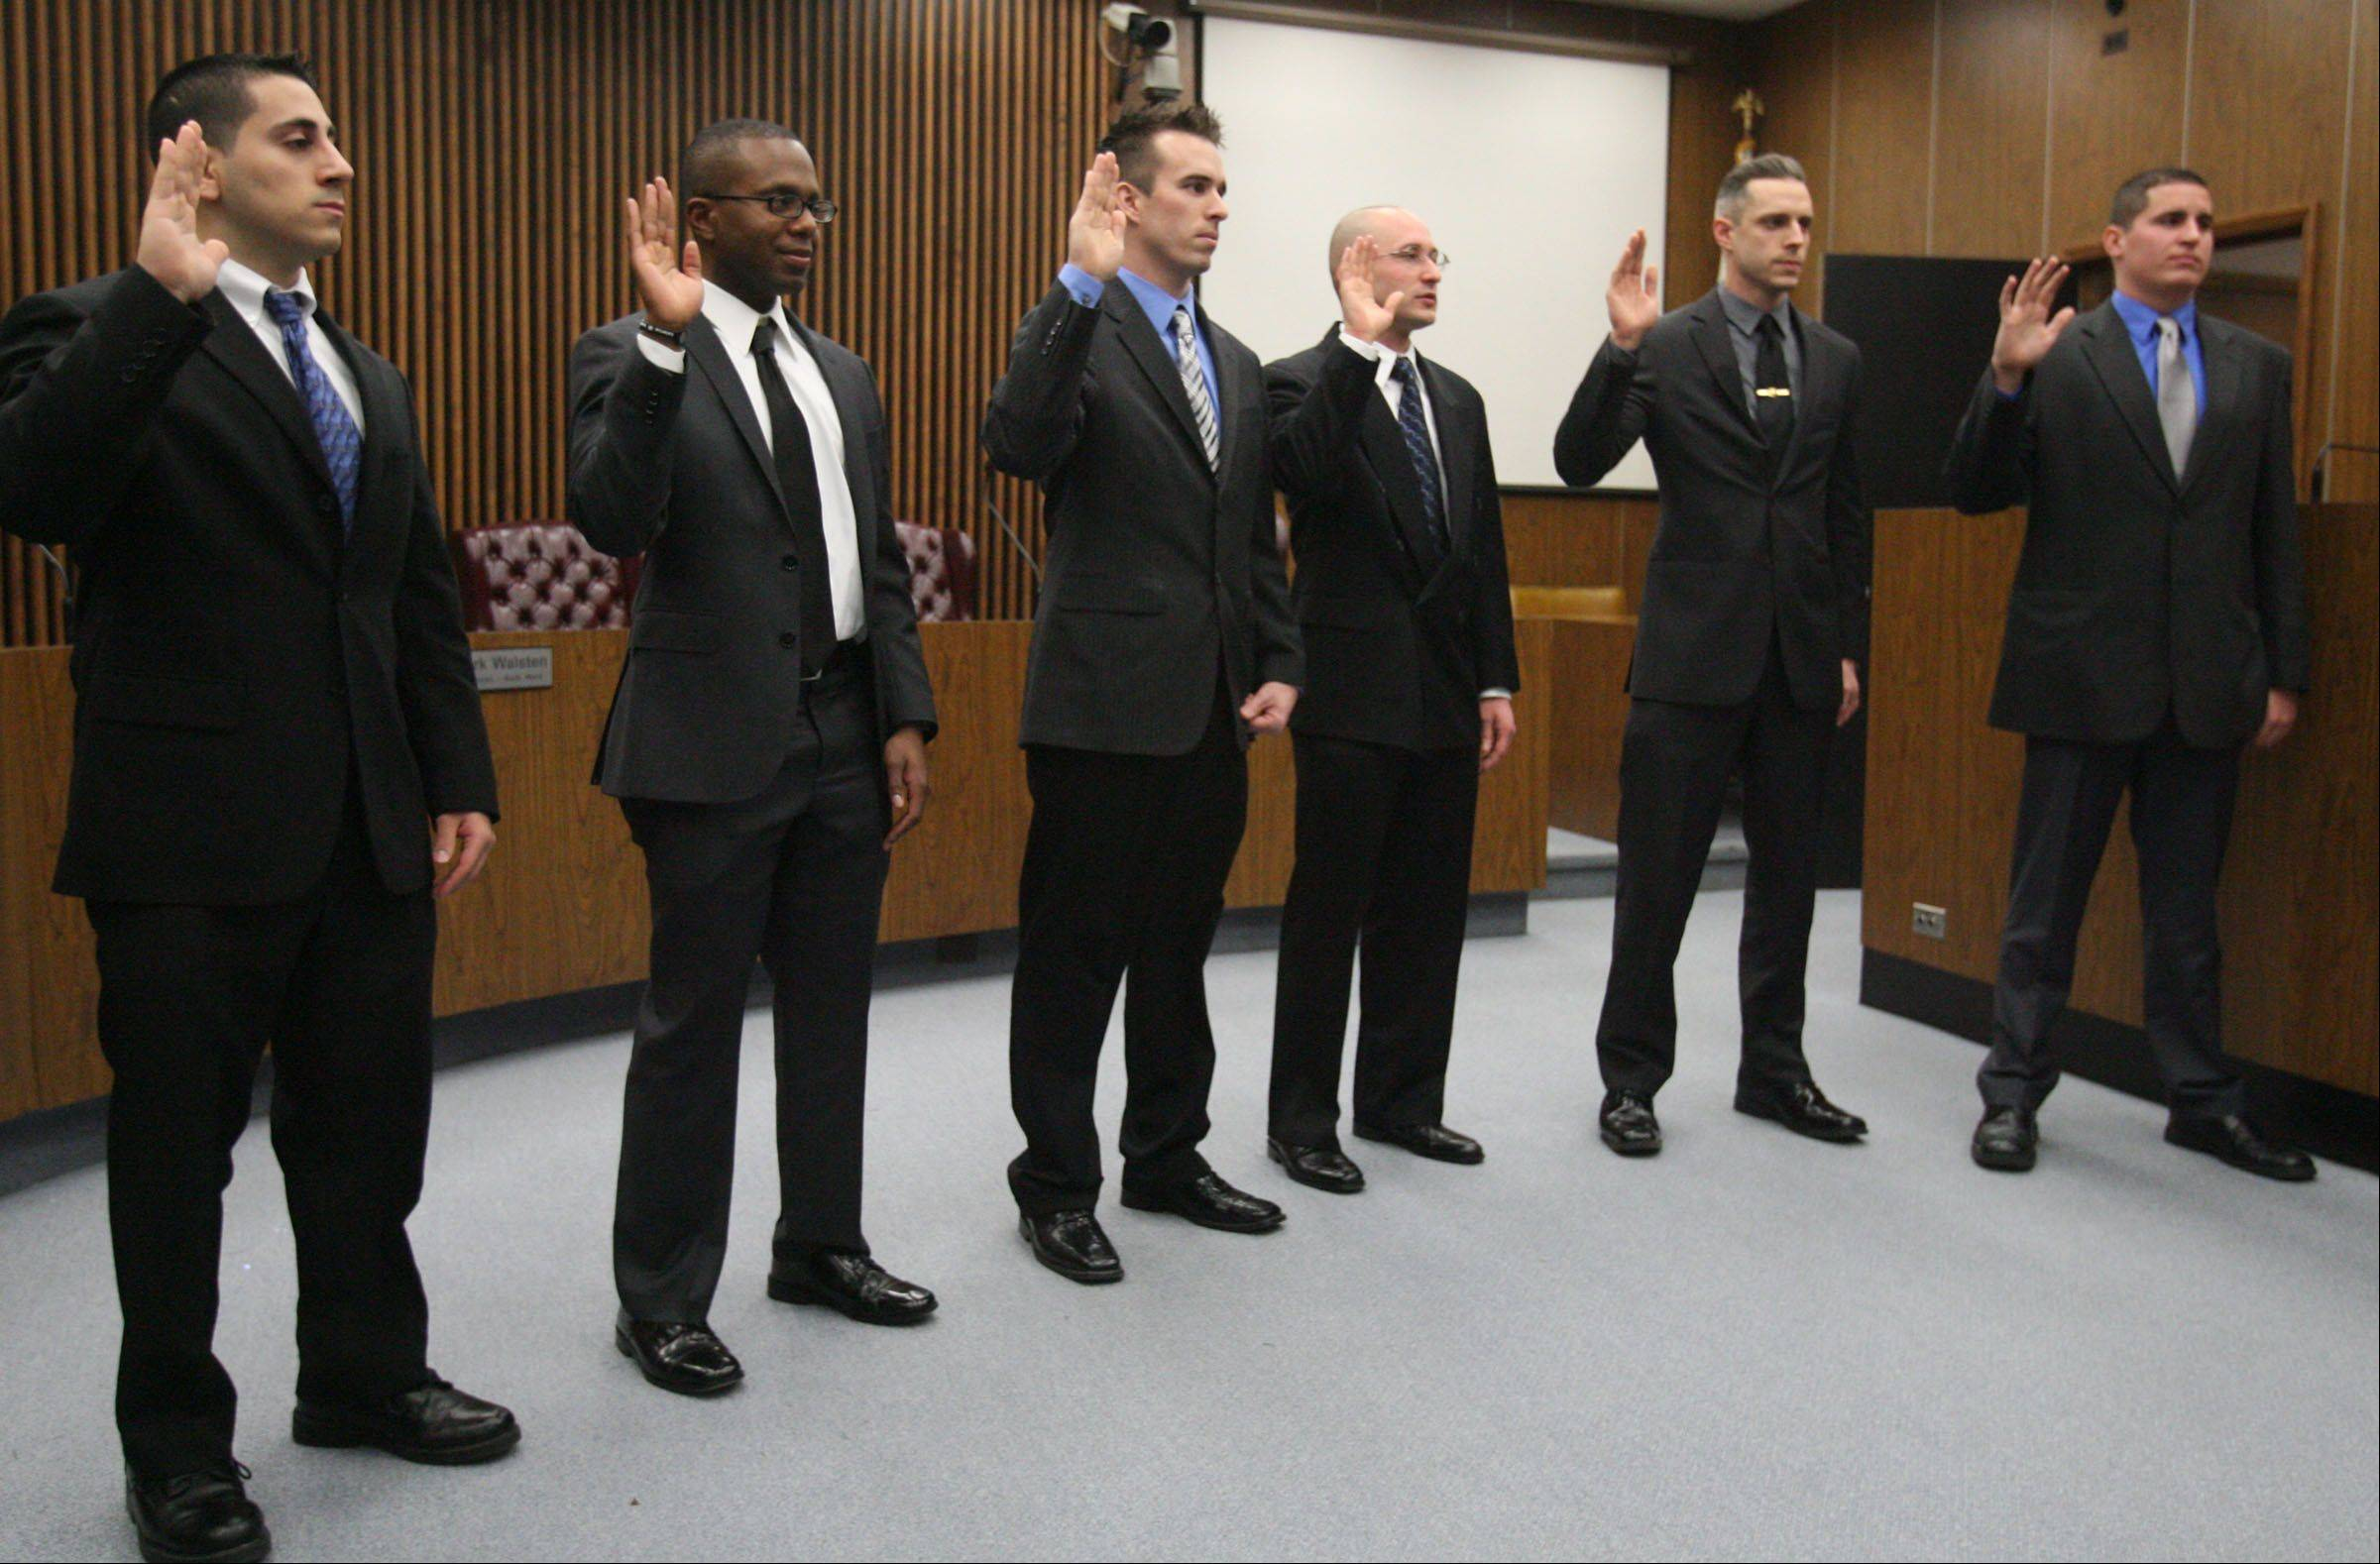 Police officers Jack Azar, left to right, William Cozzens, Jimmy Armstrong, Carl Faust, Curtis Miller, and Thomas Doig were sworn in Wednesday by Des Plaines City Clerk Gloria Ludwig in the city council chambers at Des Plaines City Hall.